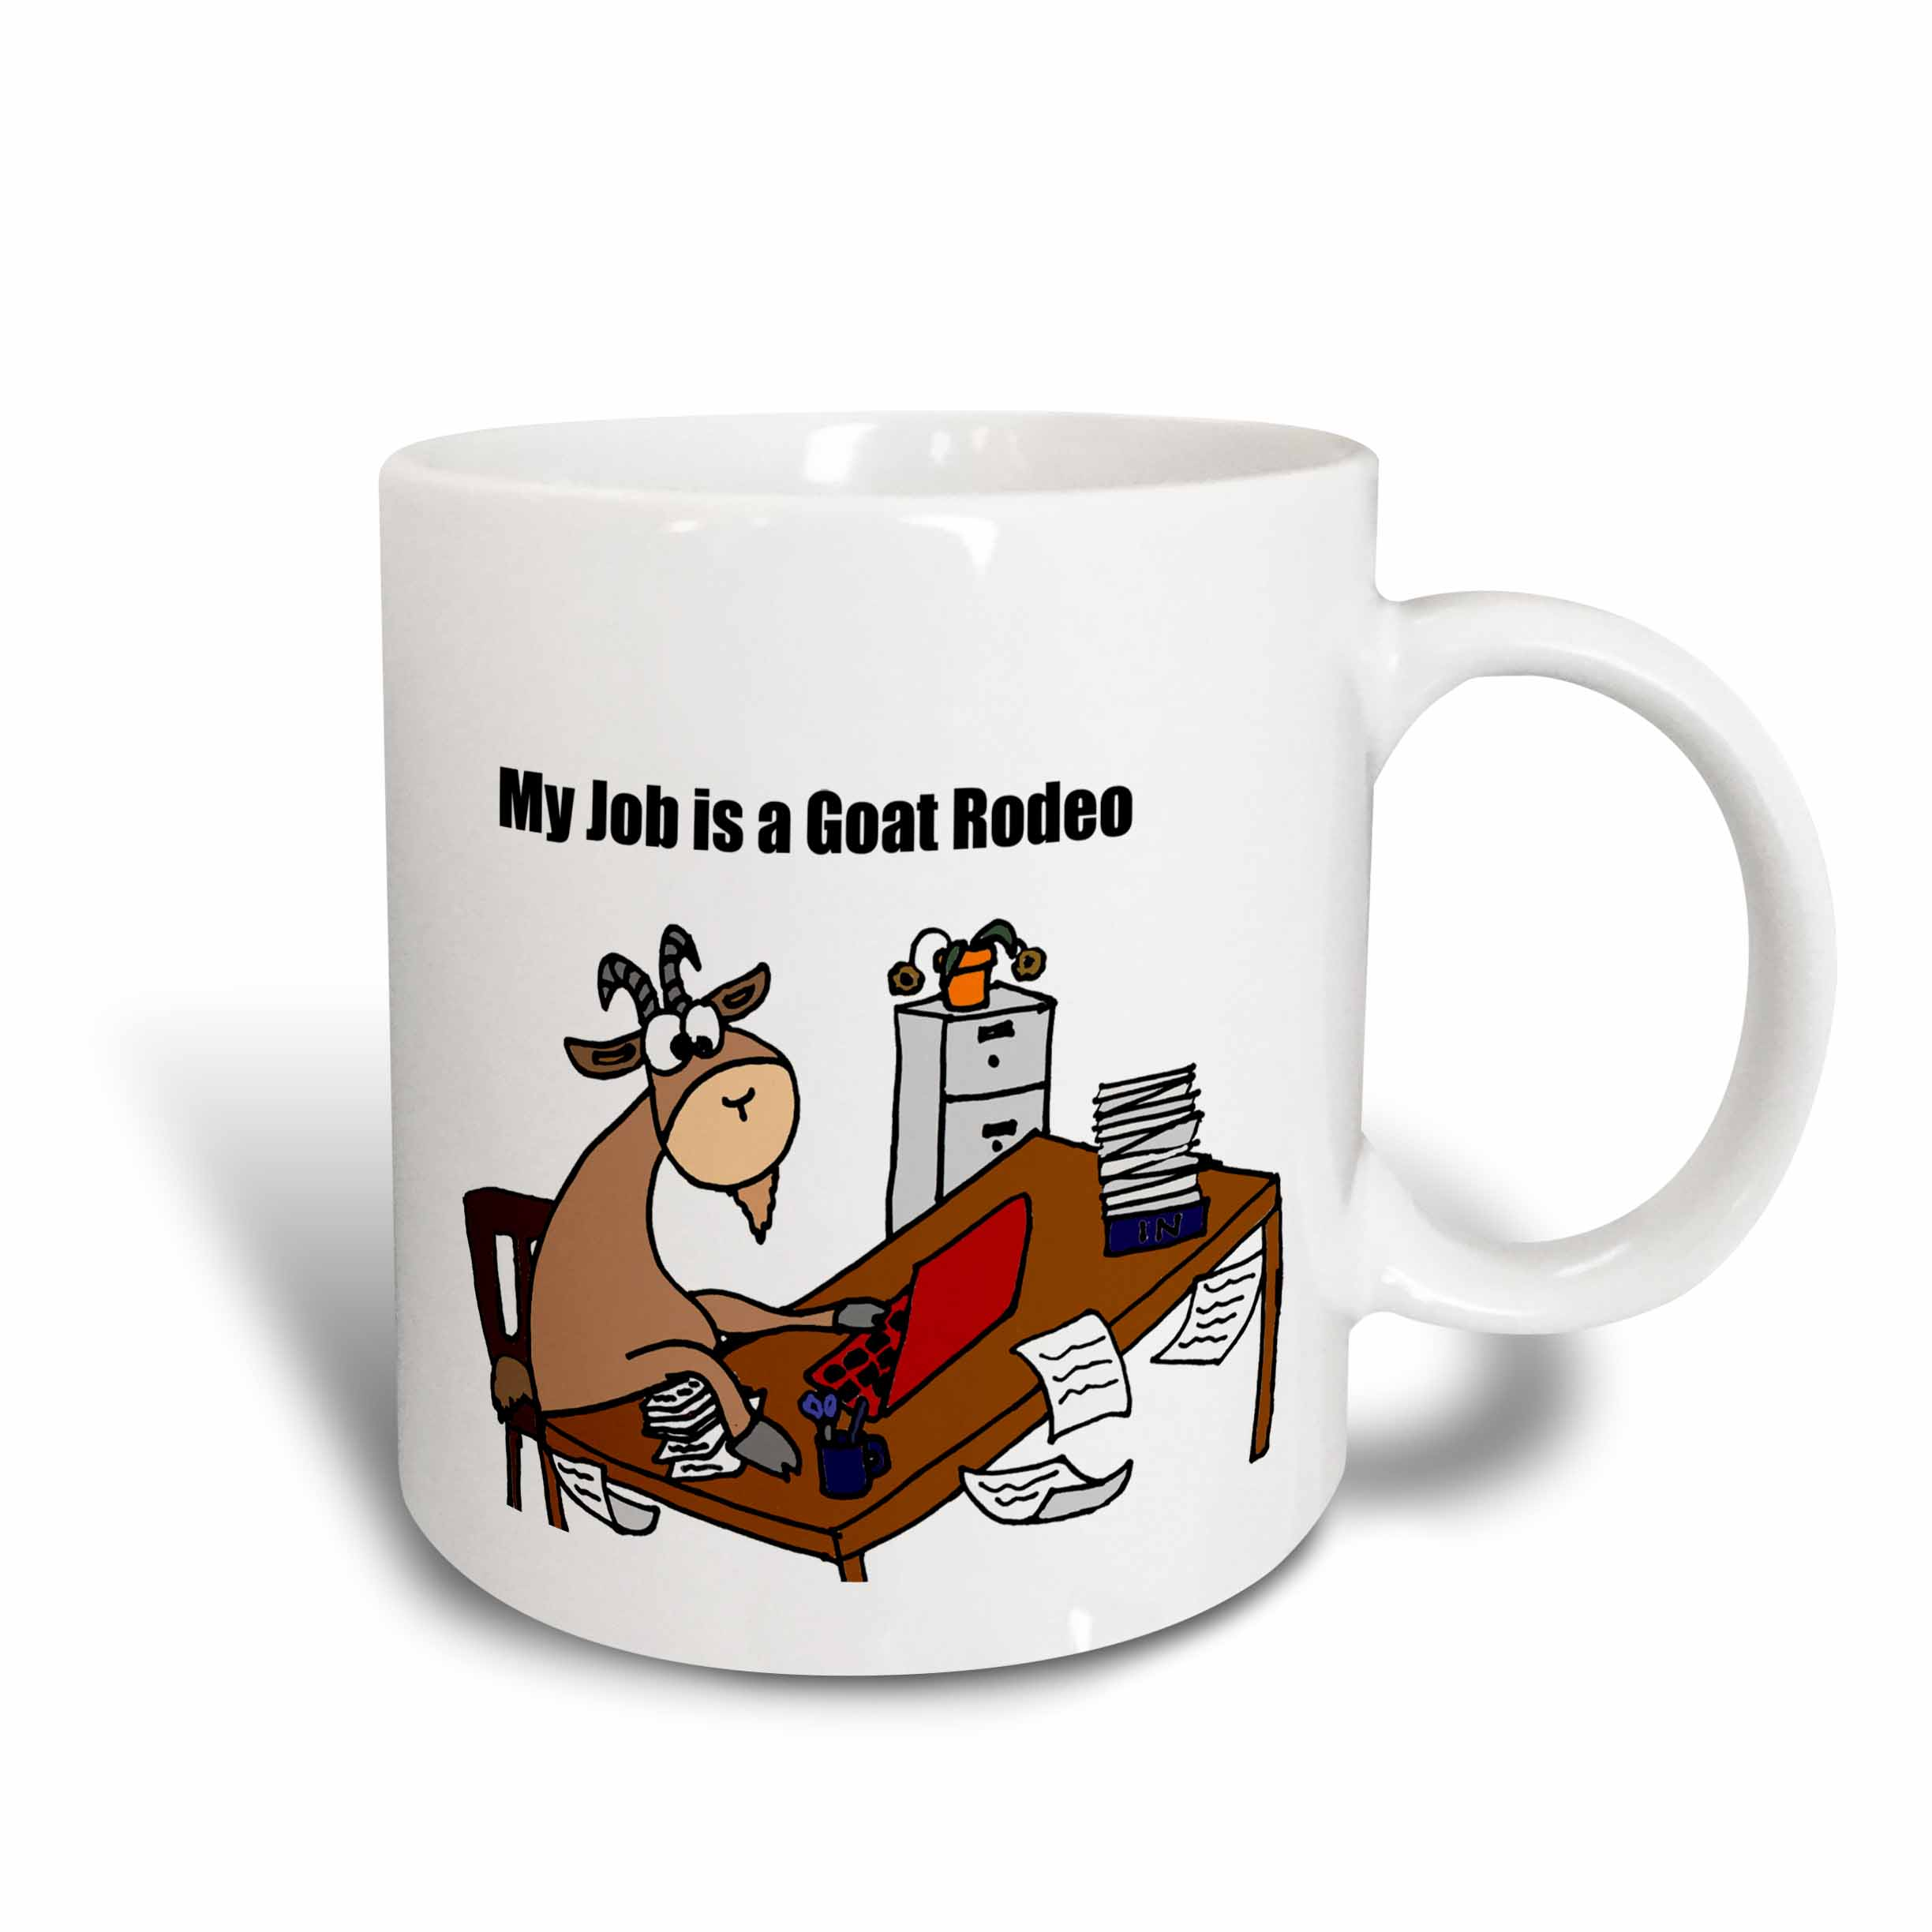 Is A Goat 3drose My Job Ounce Rodeo Mug11 CartoonCeramic A4c3RqS5jL